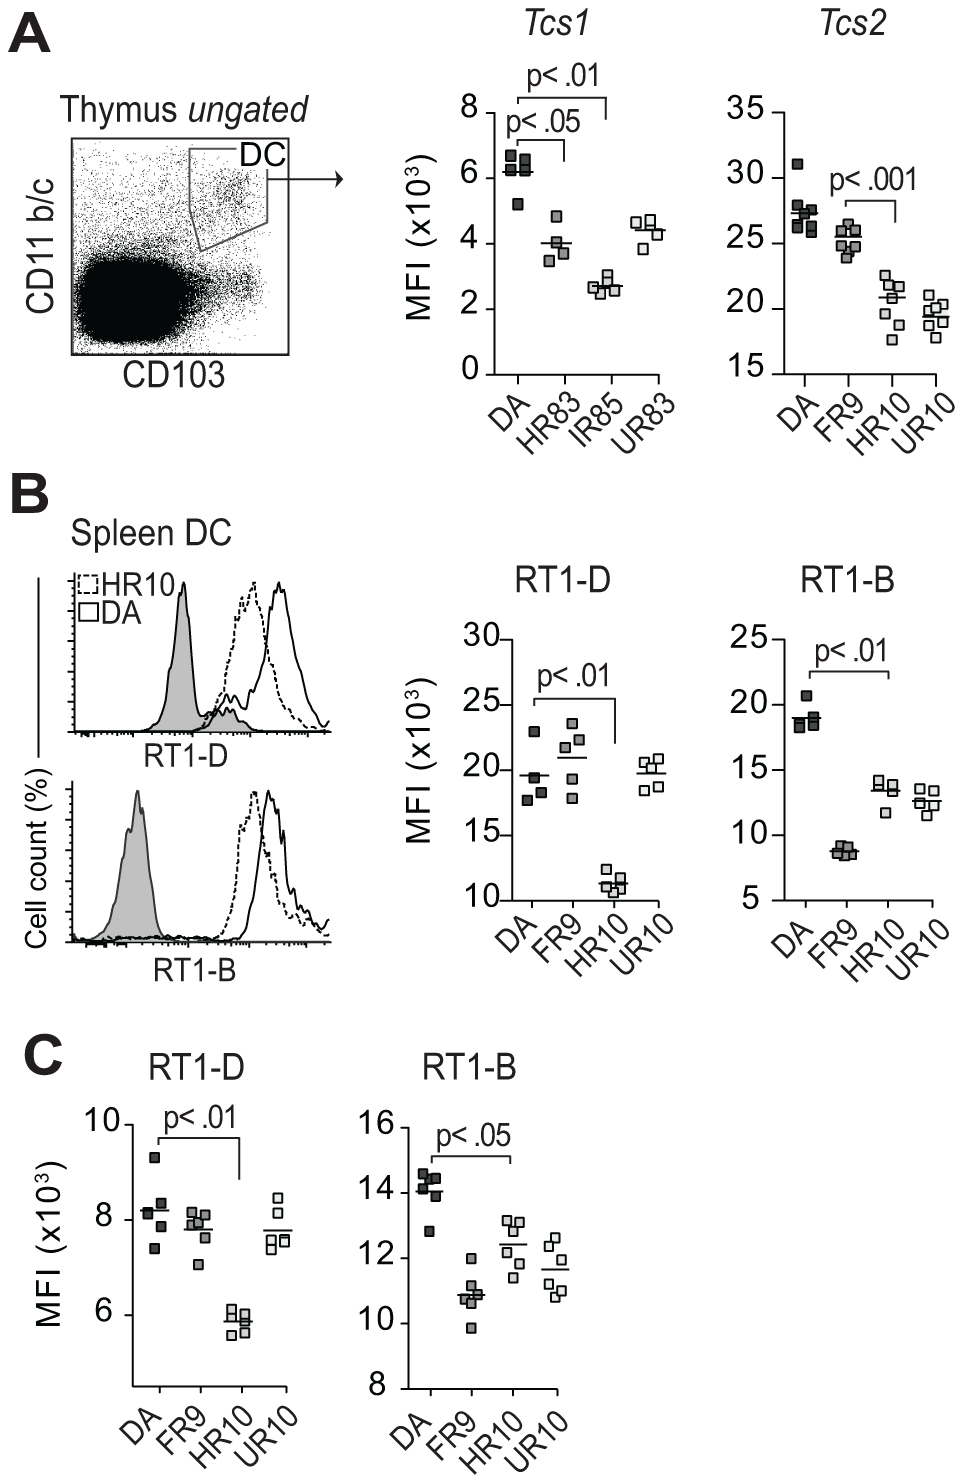 <i>Tcs1</i> and <i>Tcs2</i>-congenic strains show similar variation in extracellular MHC expression in thymus and spleen.